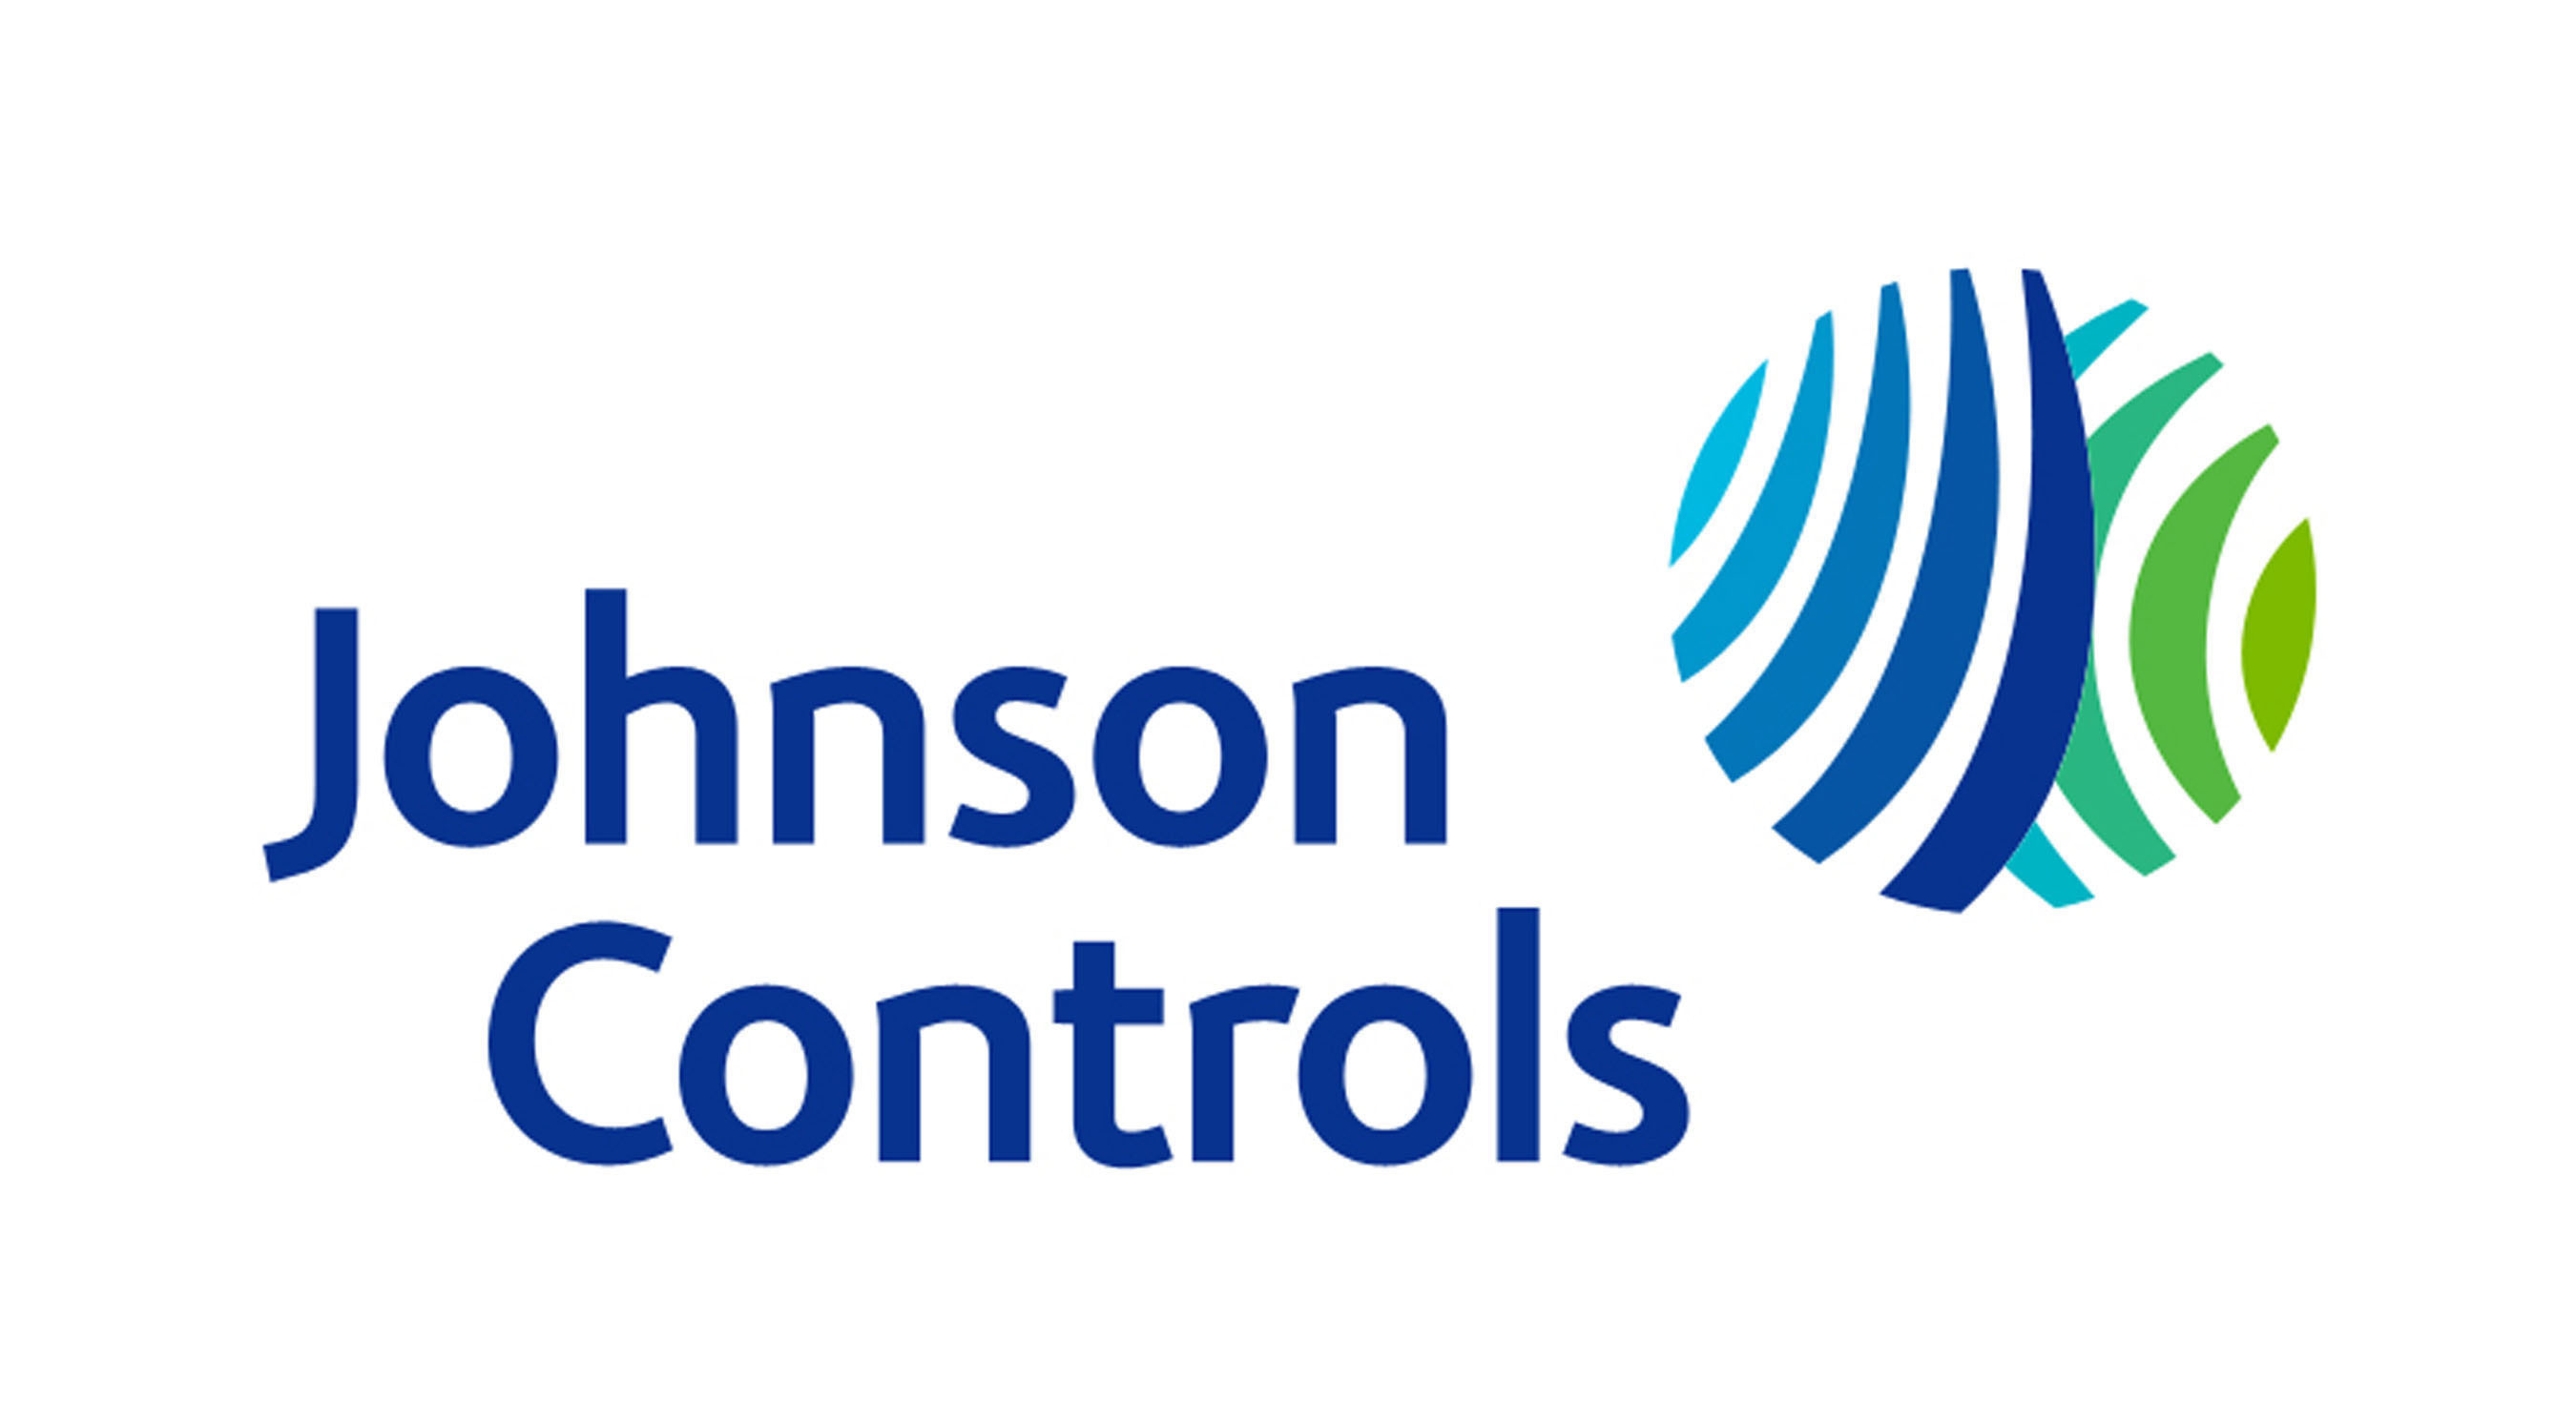 Johnson Controls Logo. (PRNewsFoto/JOHNSON CONTROLS, INC.) (PRNewsFoto/) (PRNewsFoto/)